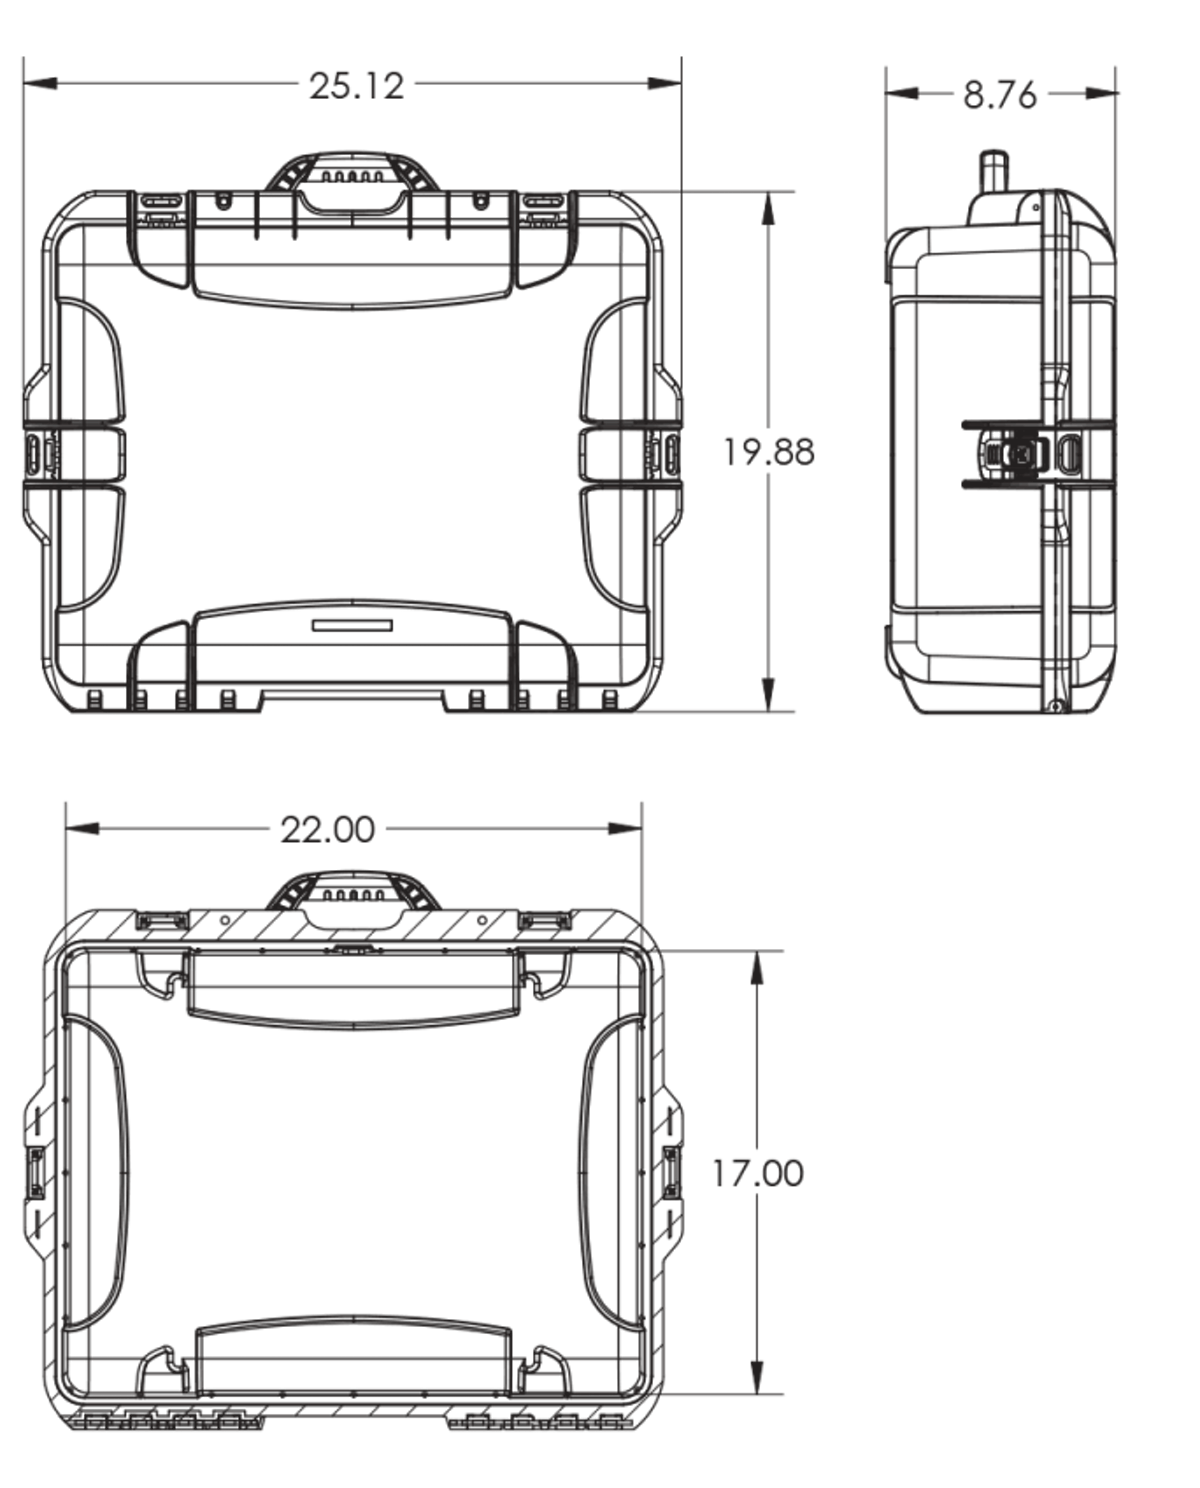 Dimensions of the Nanuk 945 Hard Case